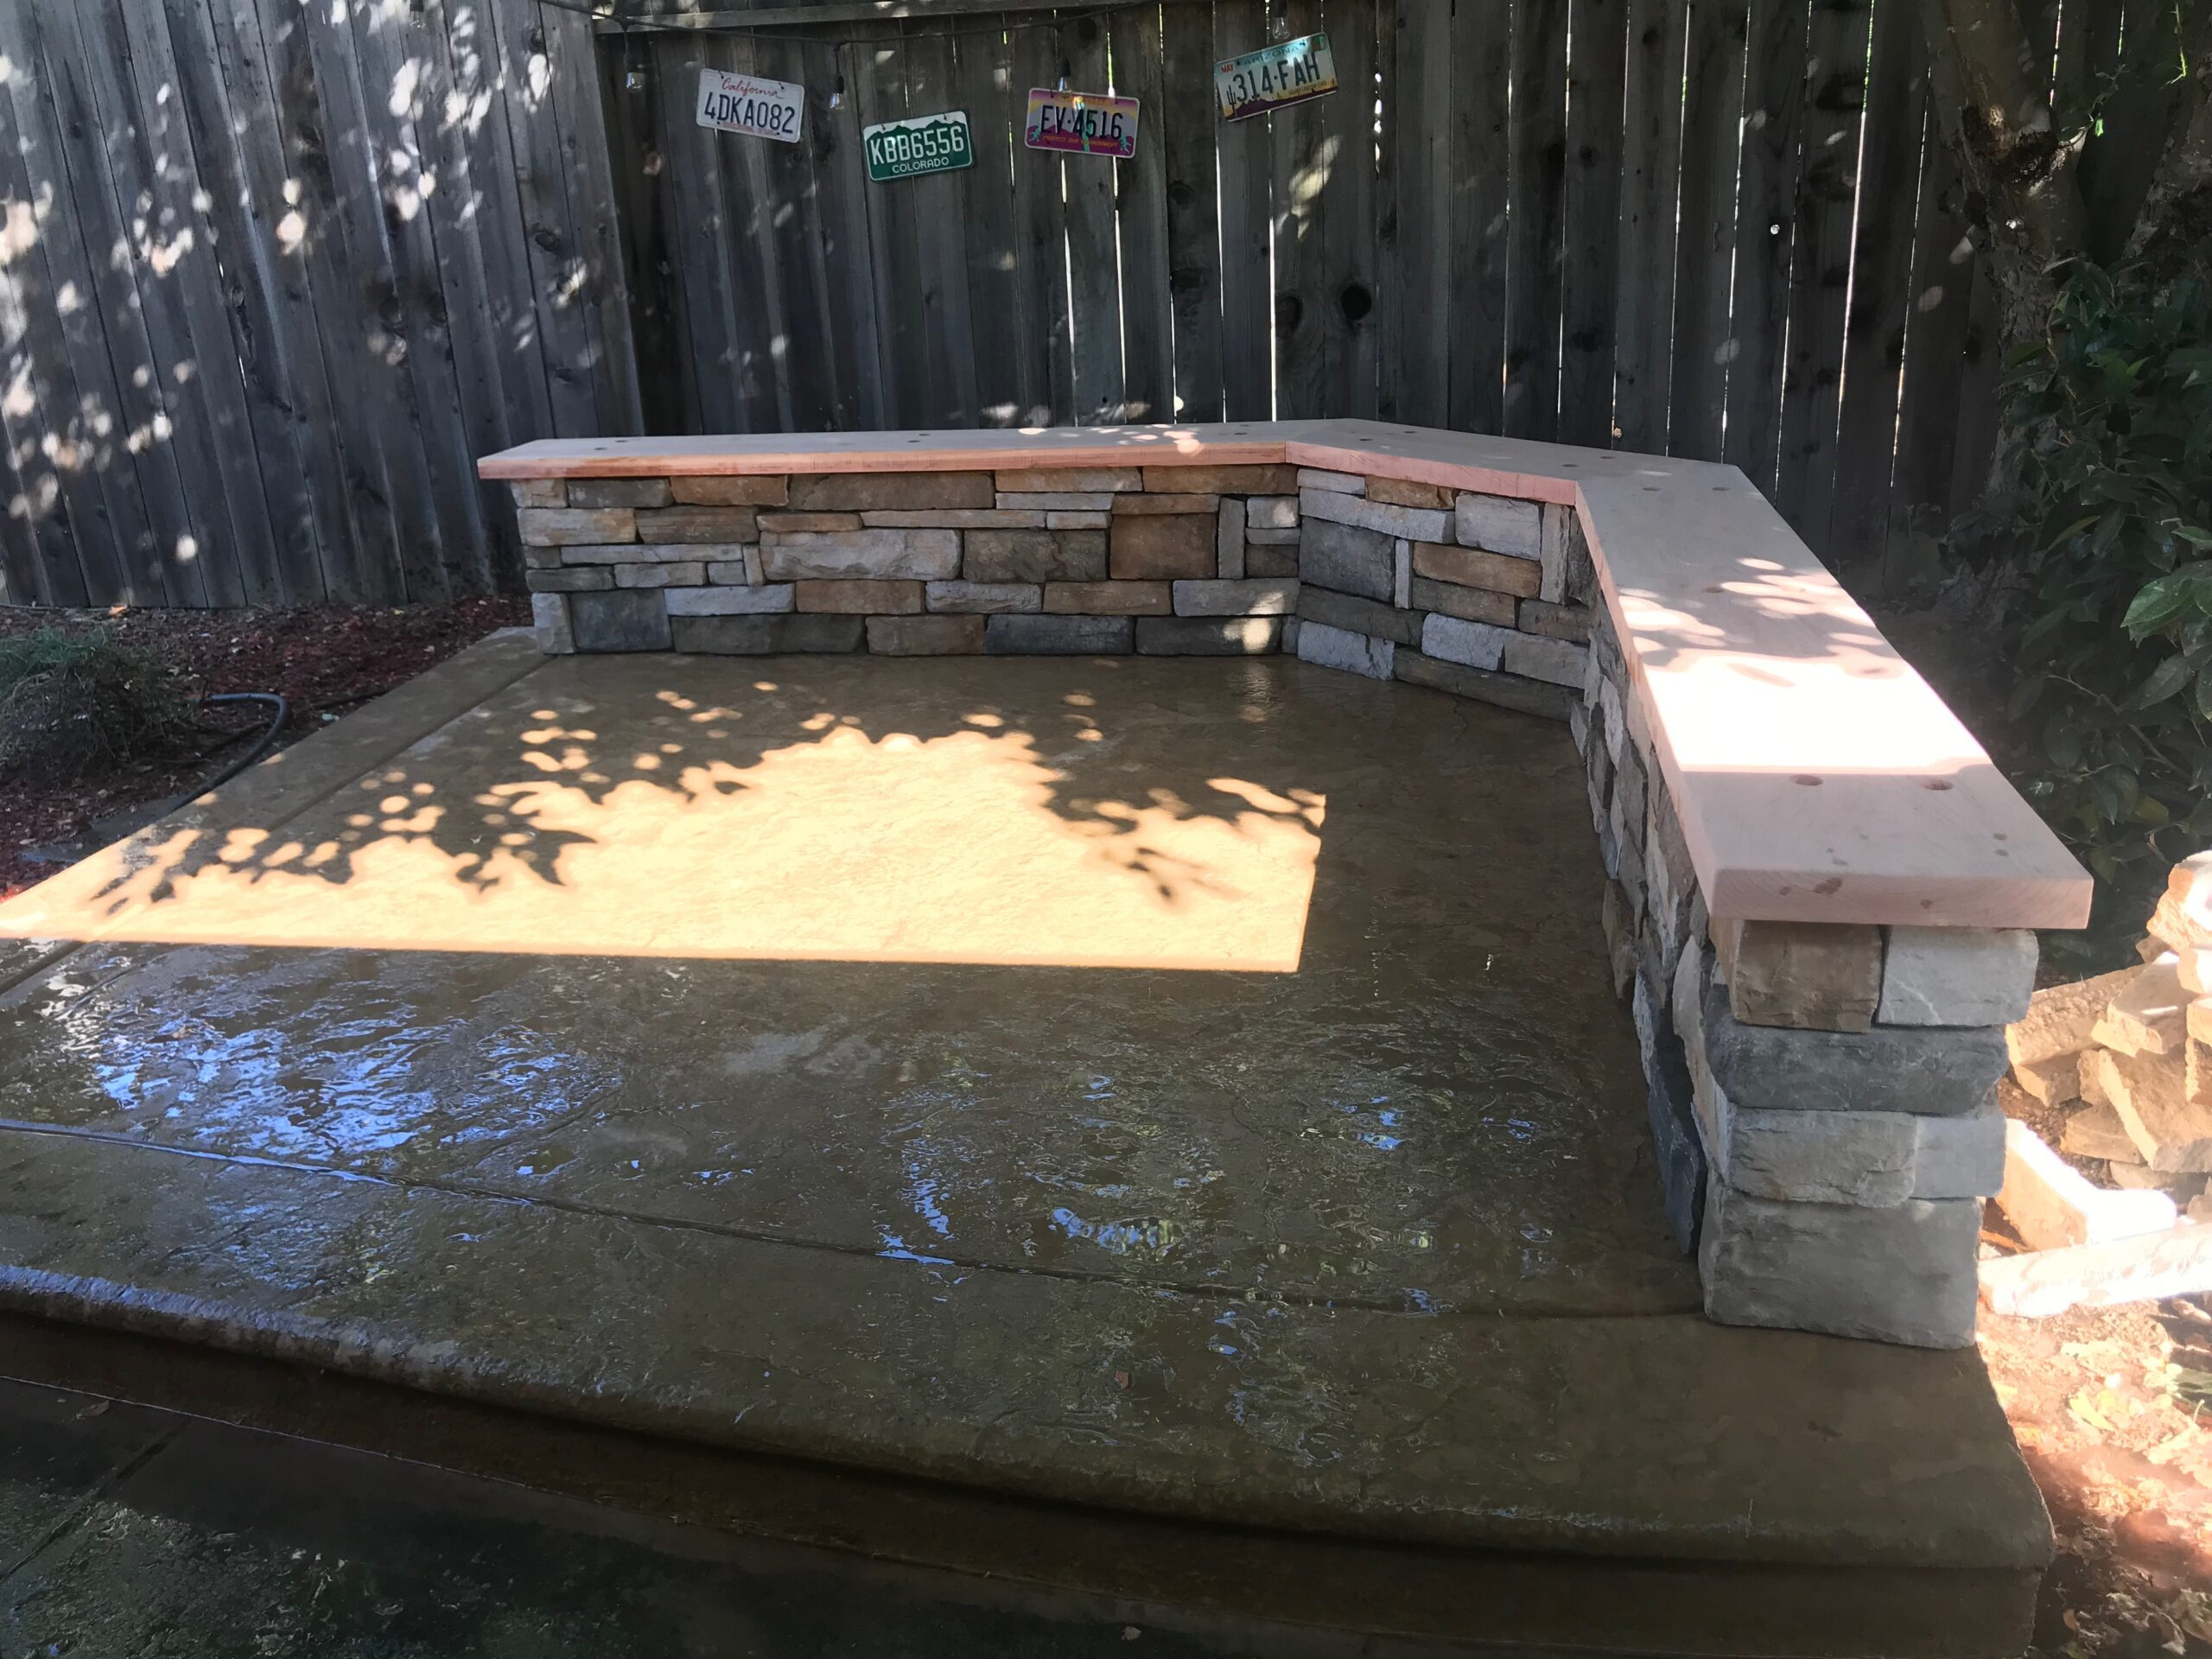 The photo shows the finished concrete work in Aliso Viejo.